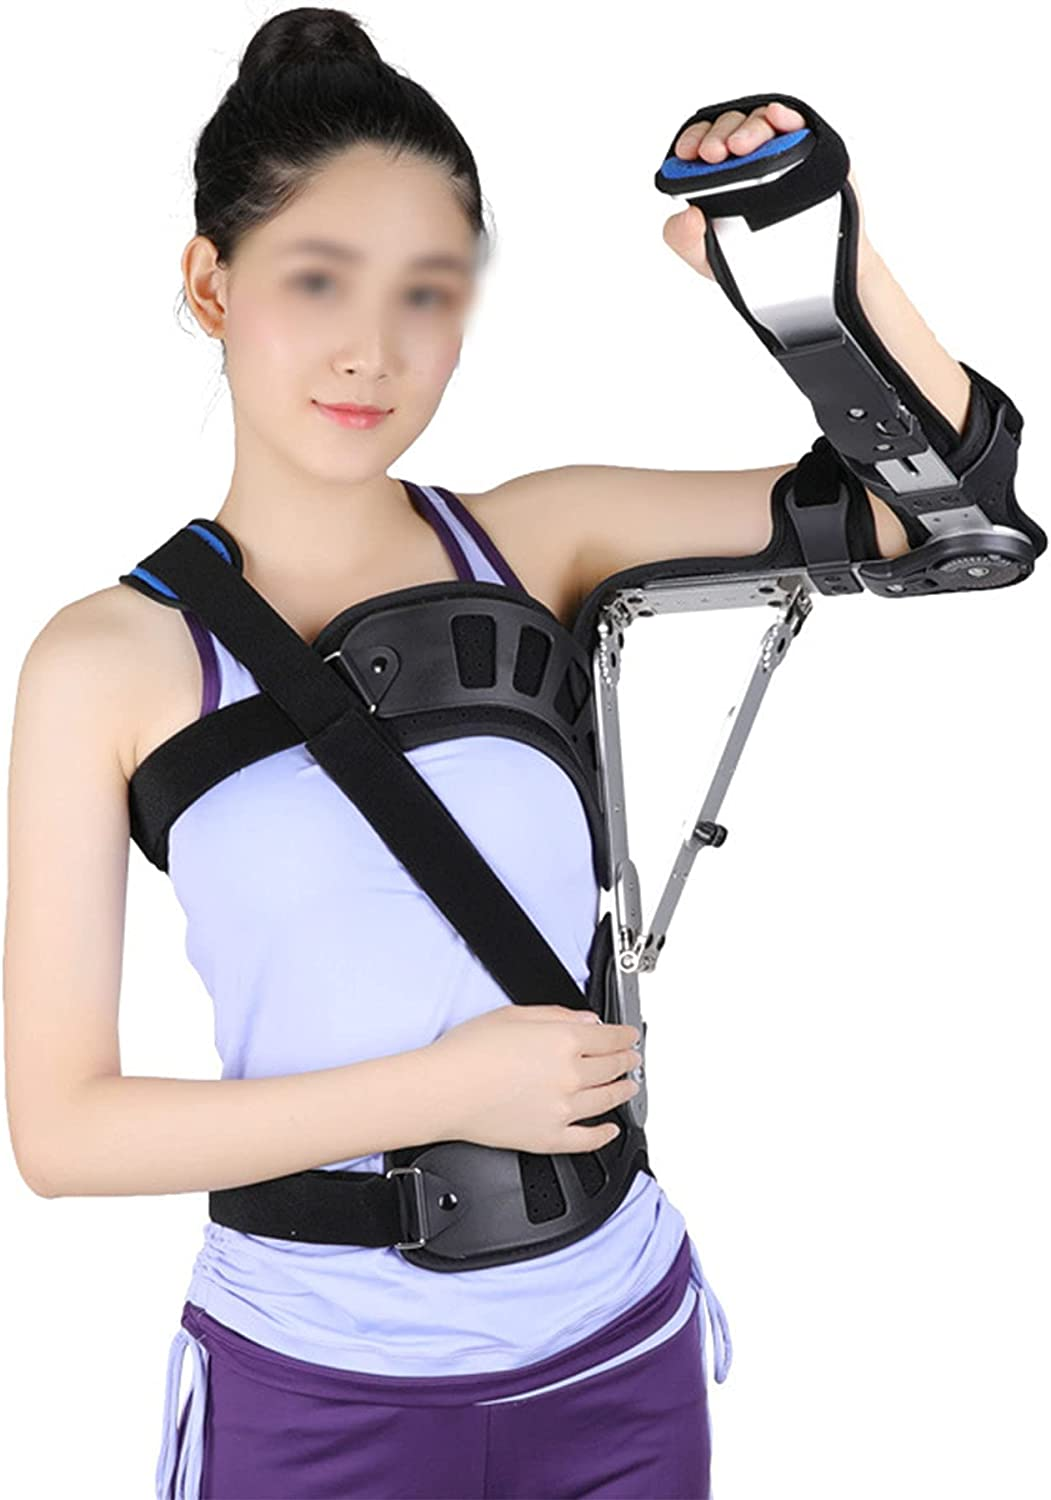 WILLQ Shoulder Abduction Immobilizer Torn Injury Di New mail order for Selling and selling